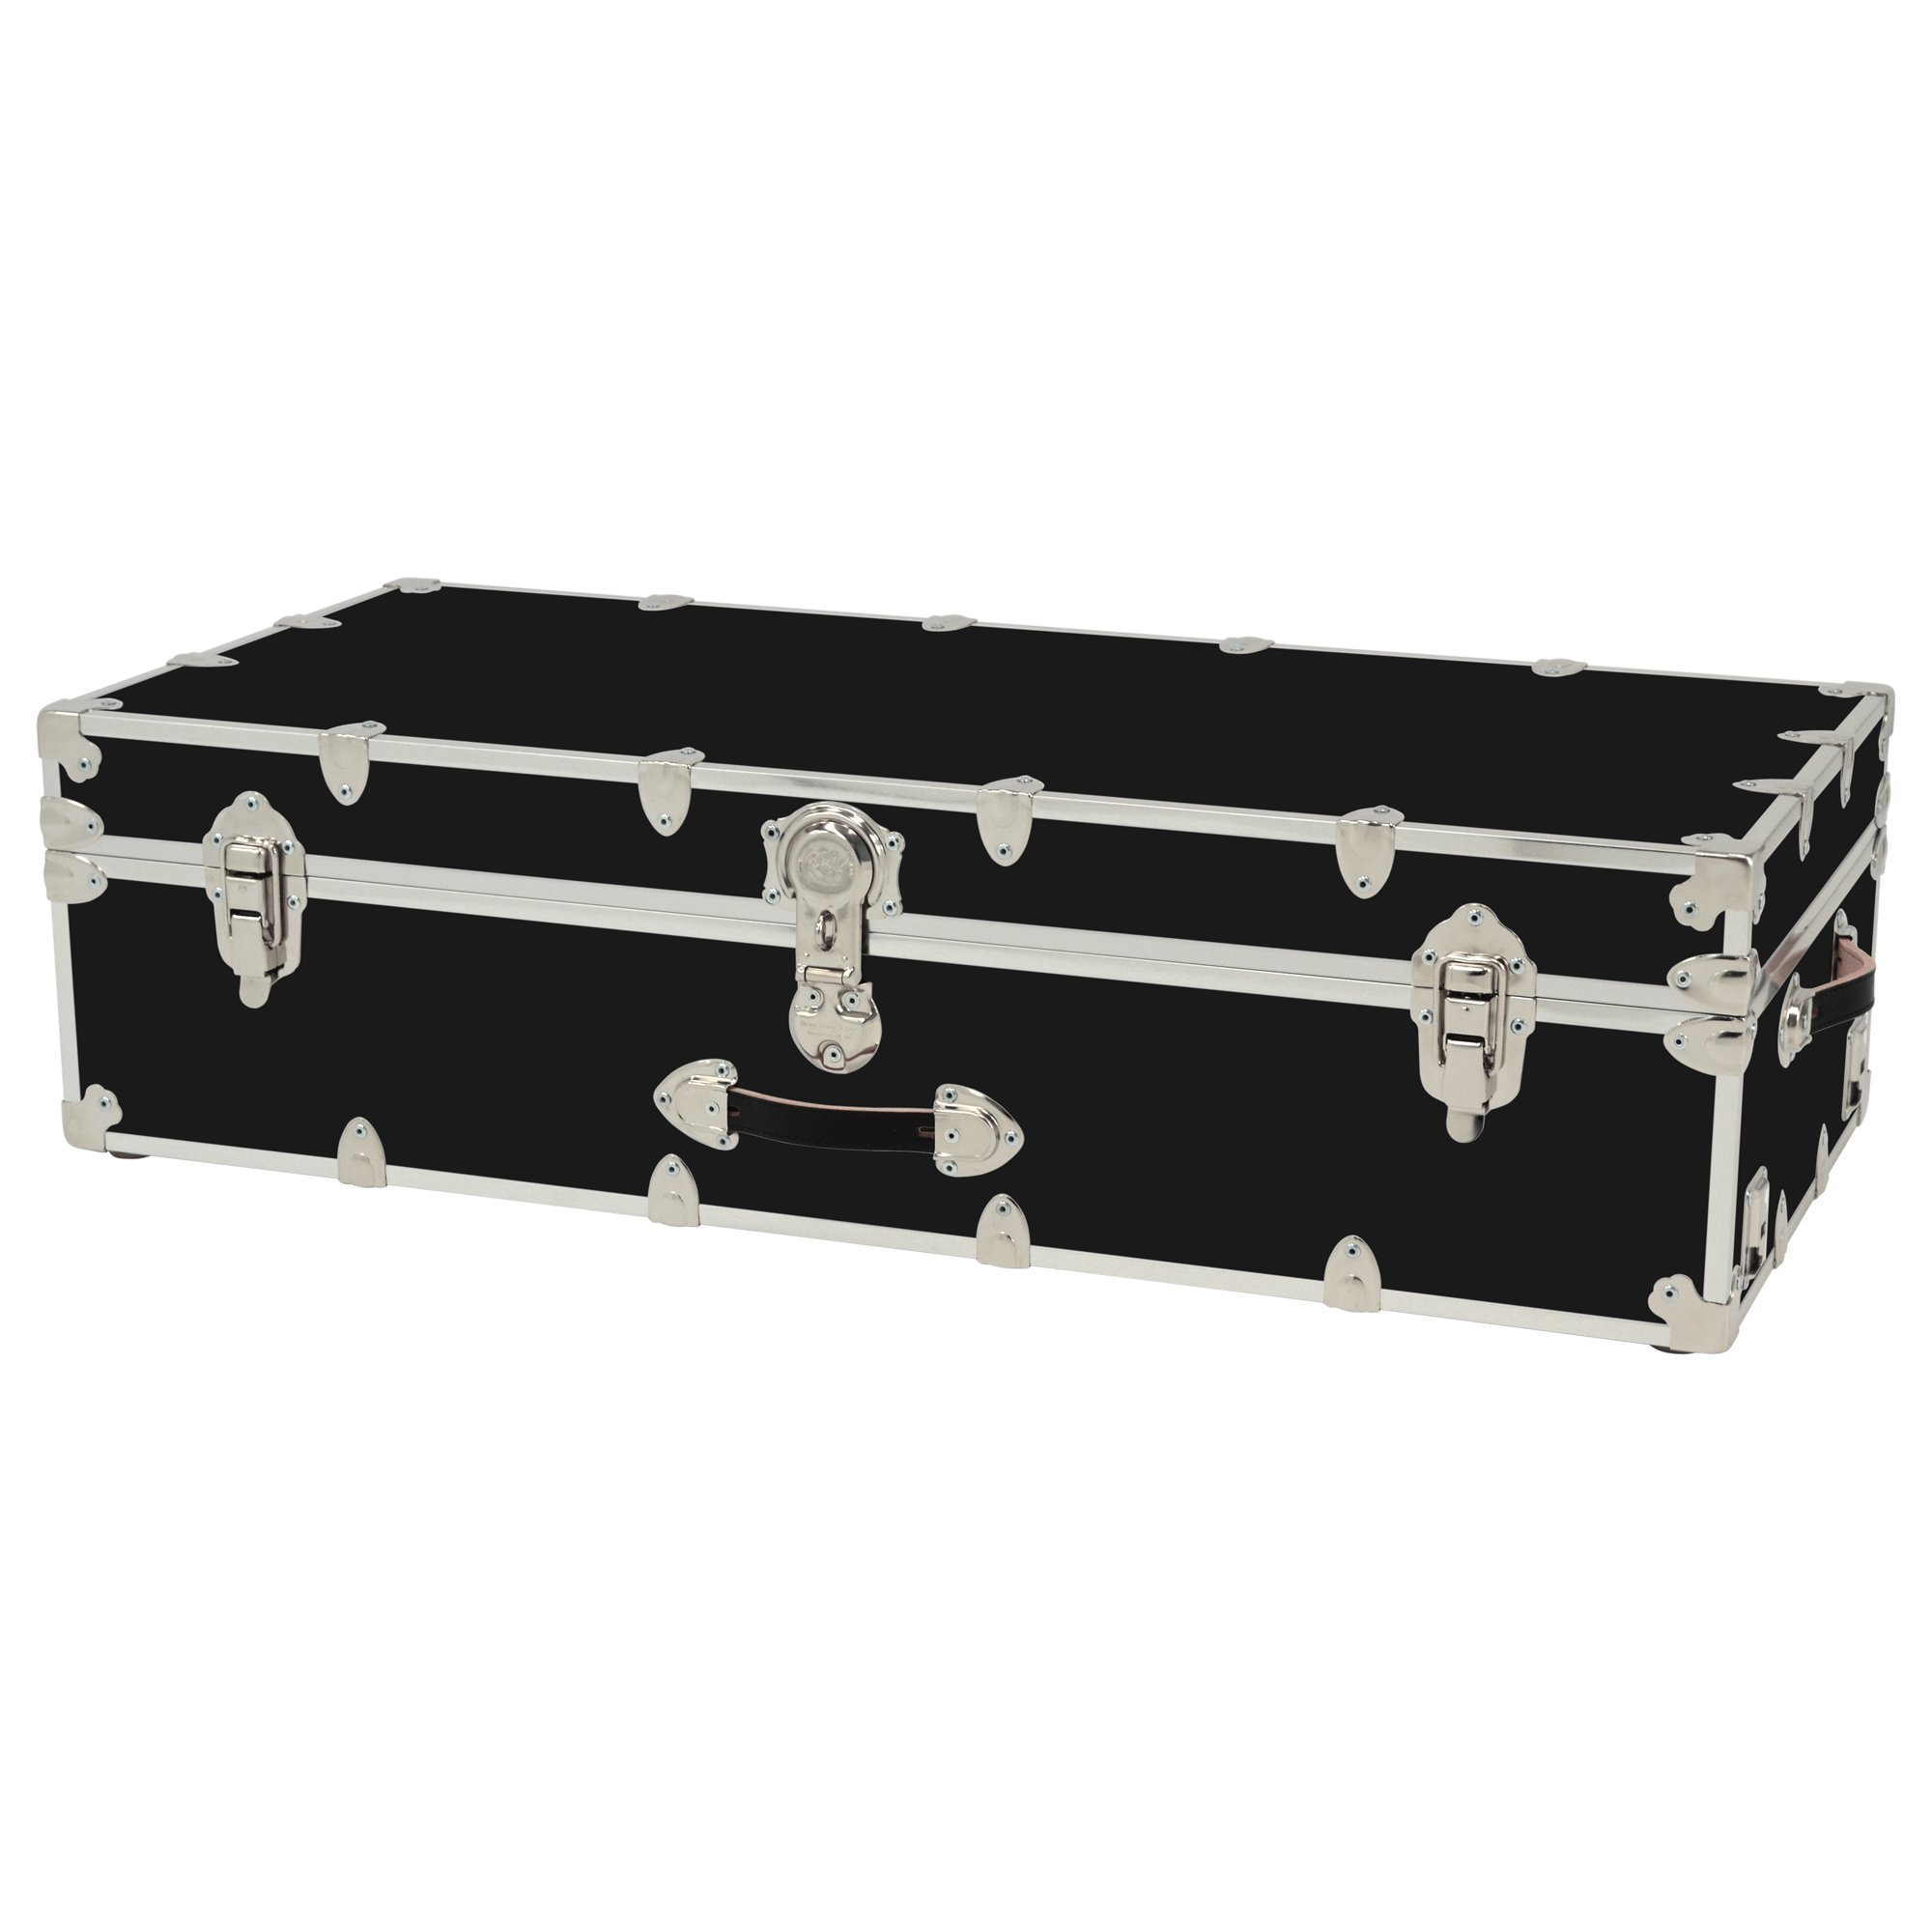 Rhino Trunk and Case Armor Trundle Trunk, Black by Rhino Trunk and Case